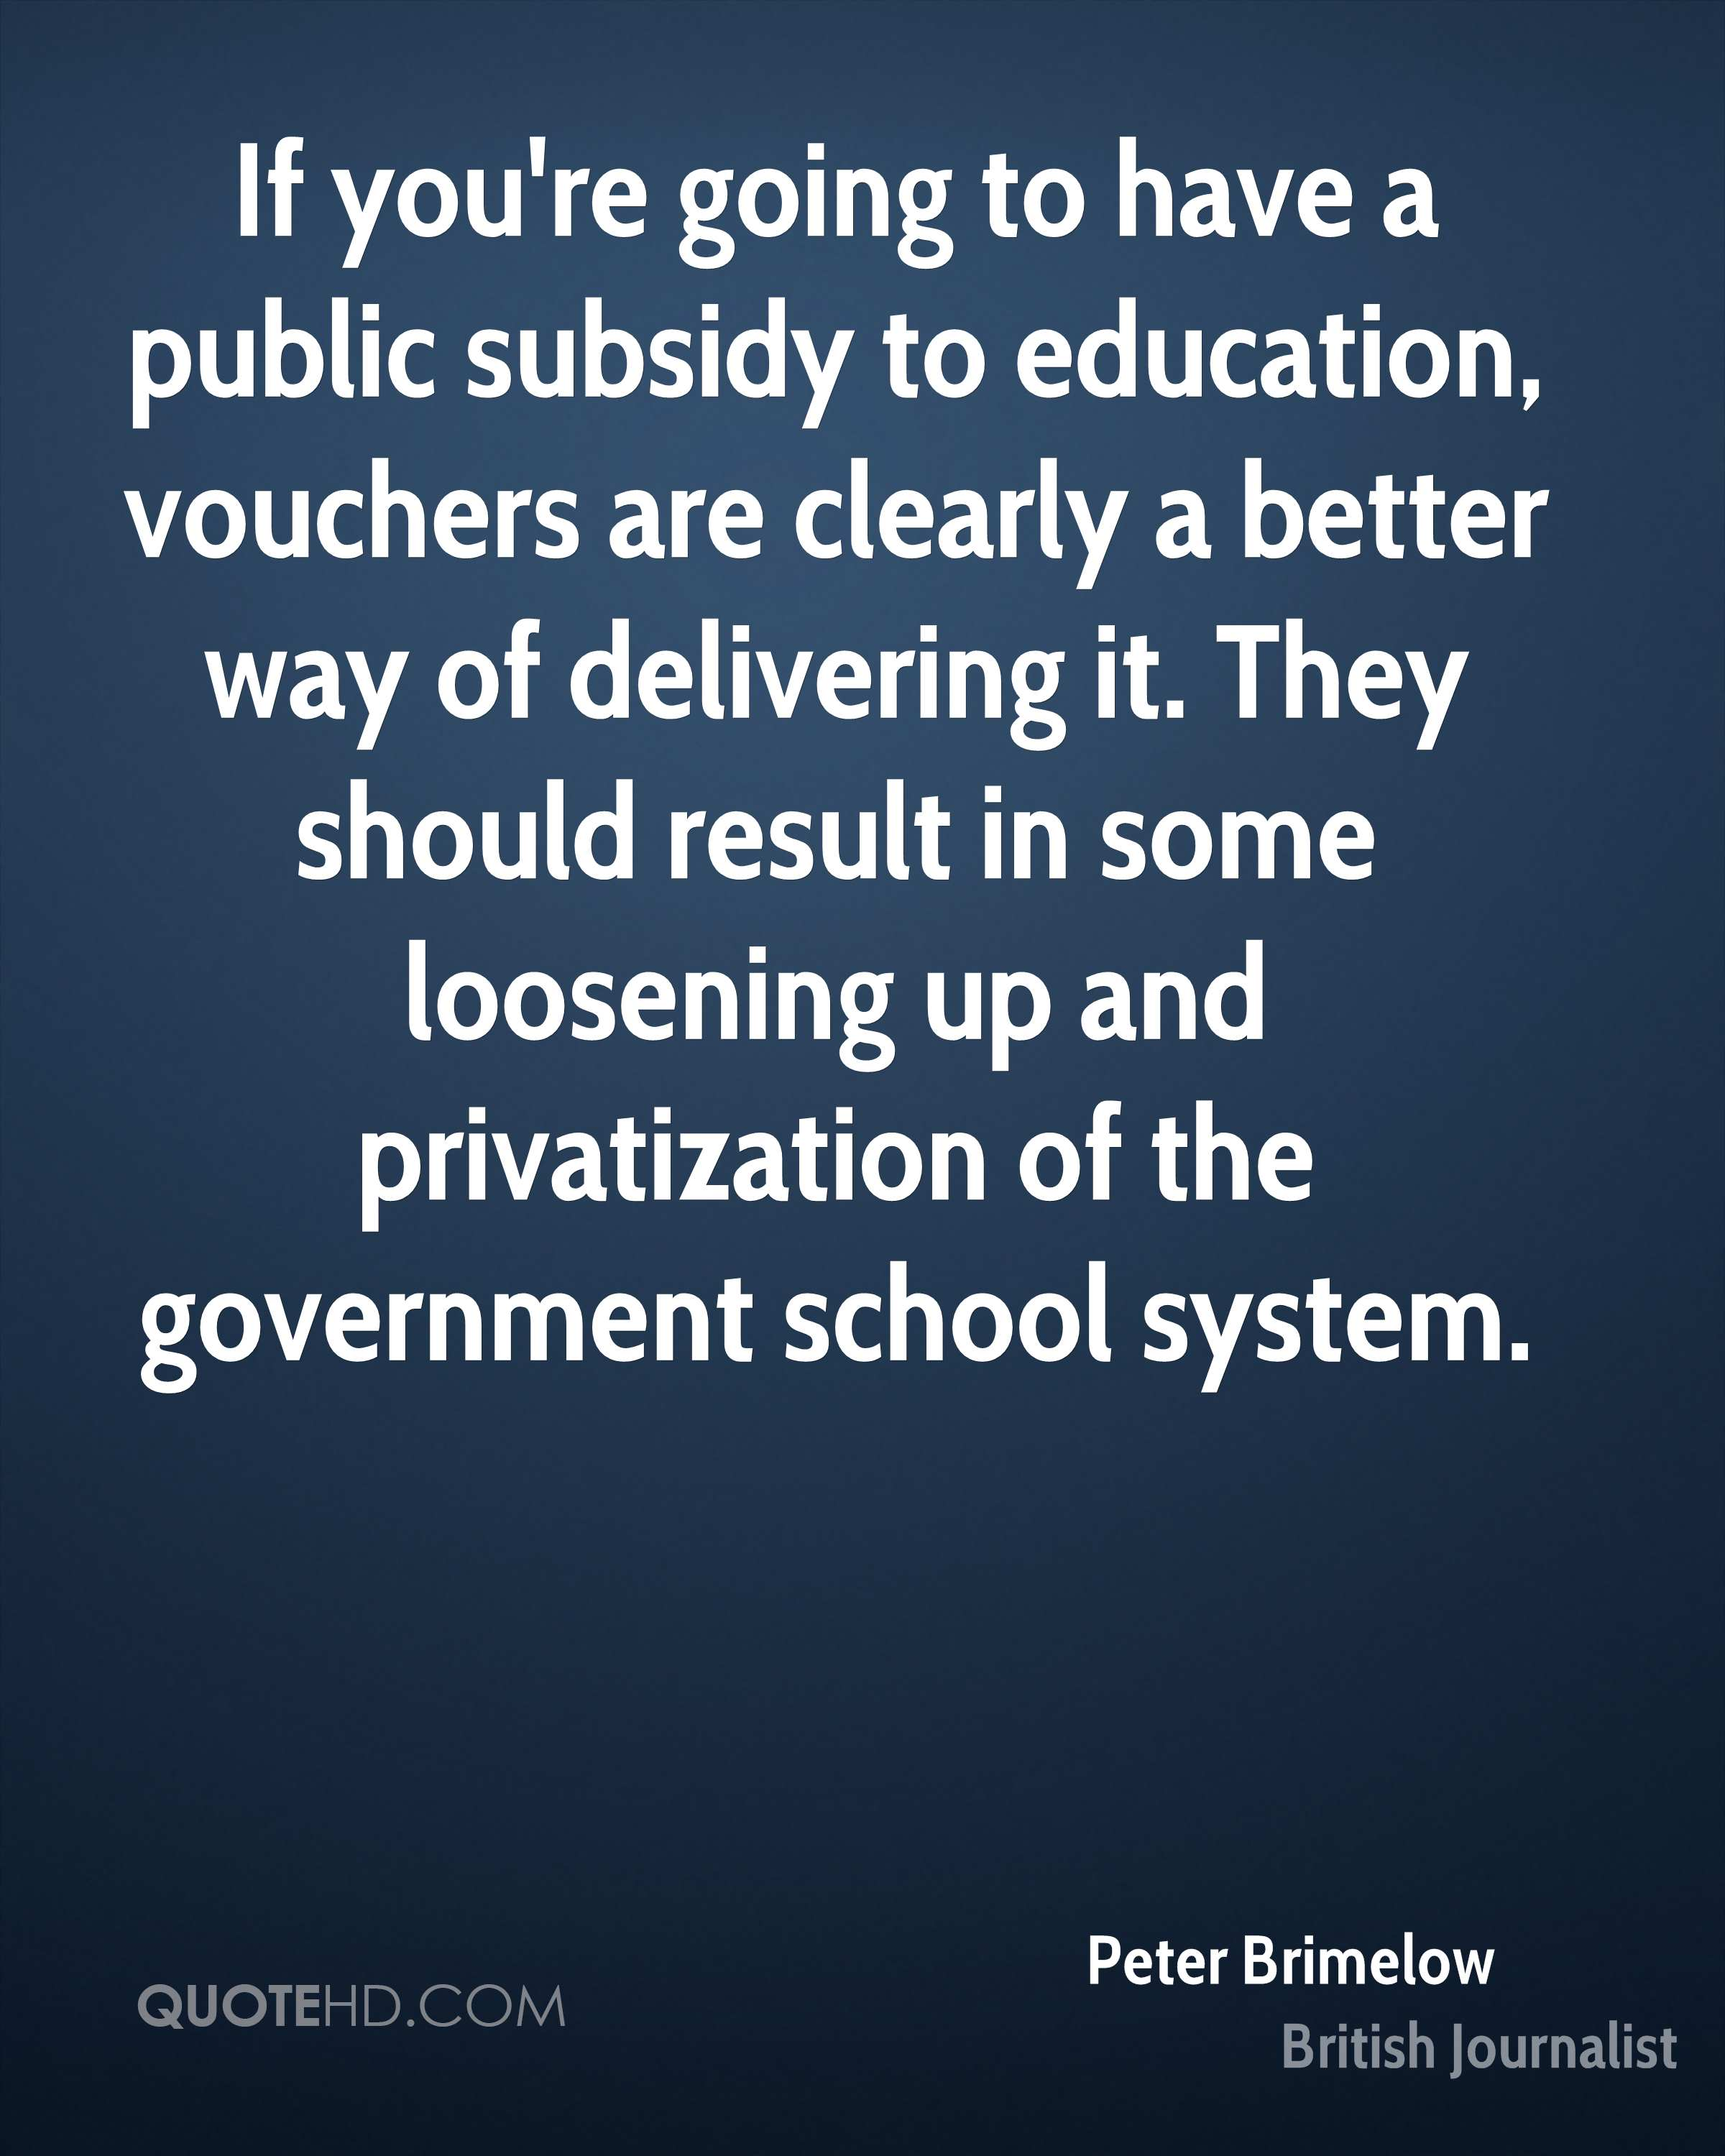 If you're going to have a public subsidy to education, vouchers are clearly a better way of delivering it. They should result in some loosening up and privatization of the government school system.